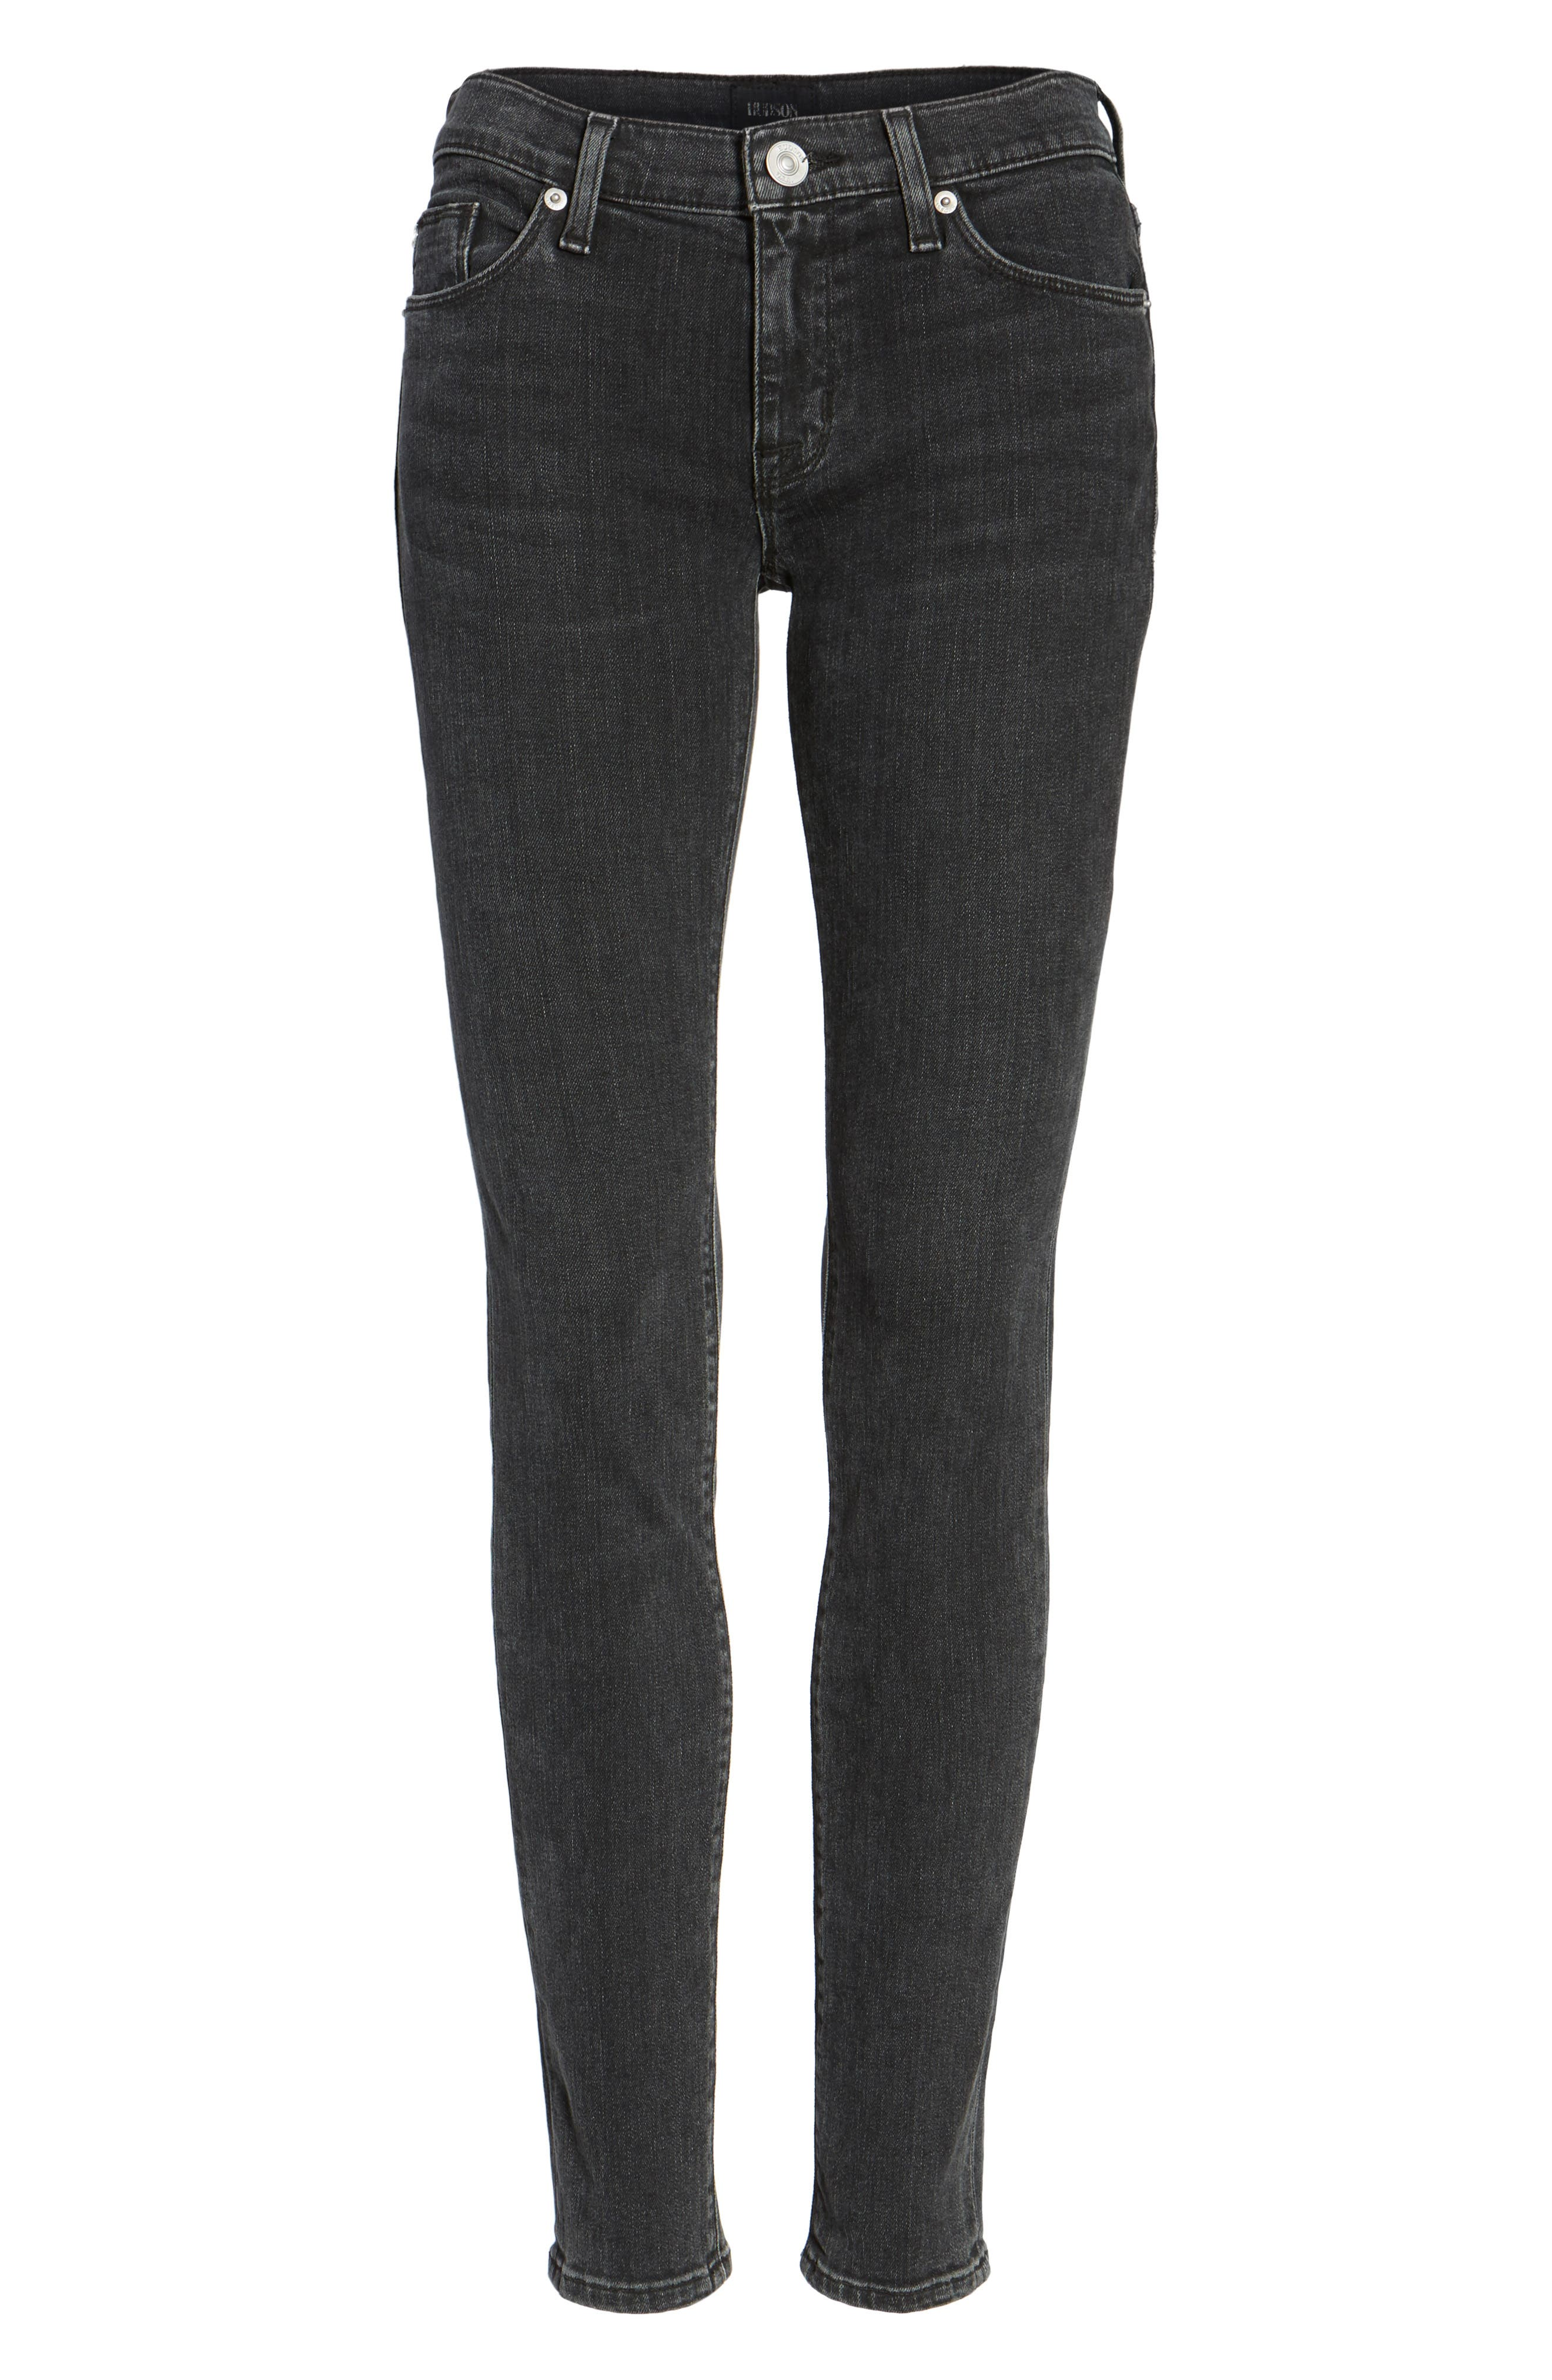 Krista Super Skinny Jeans,                             Alternate thumbnail 6, color,                             001